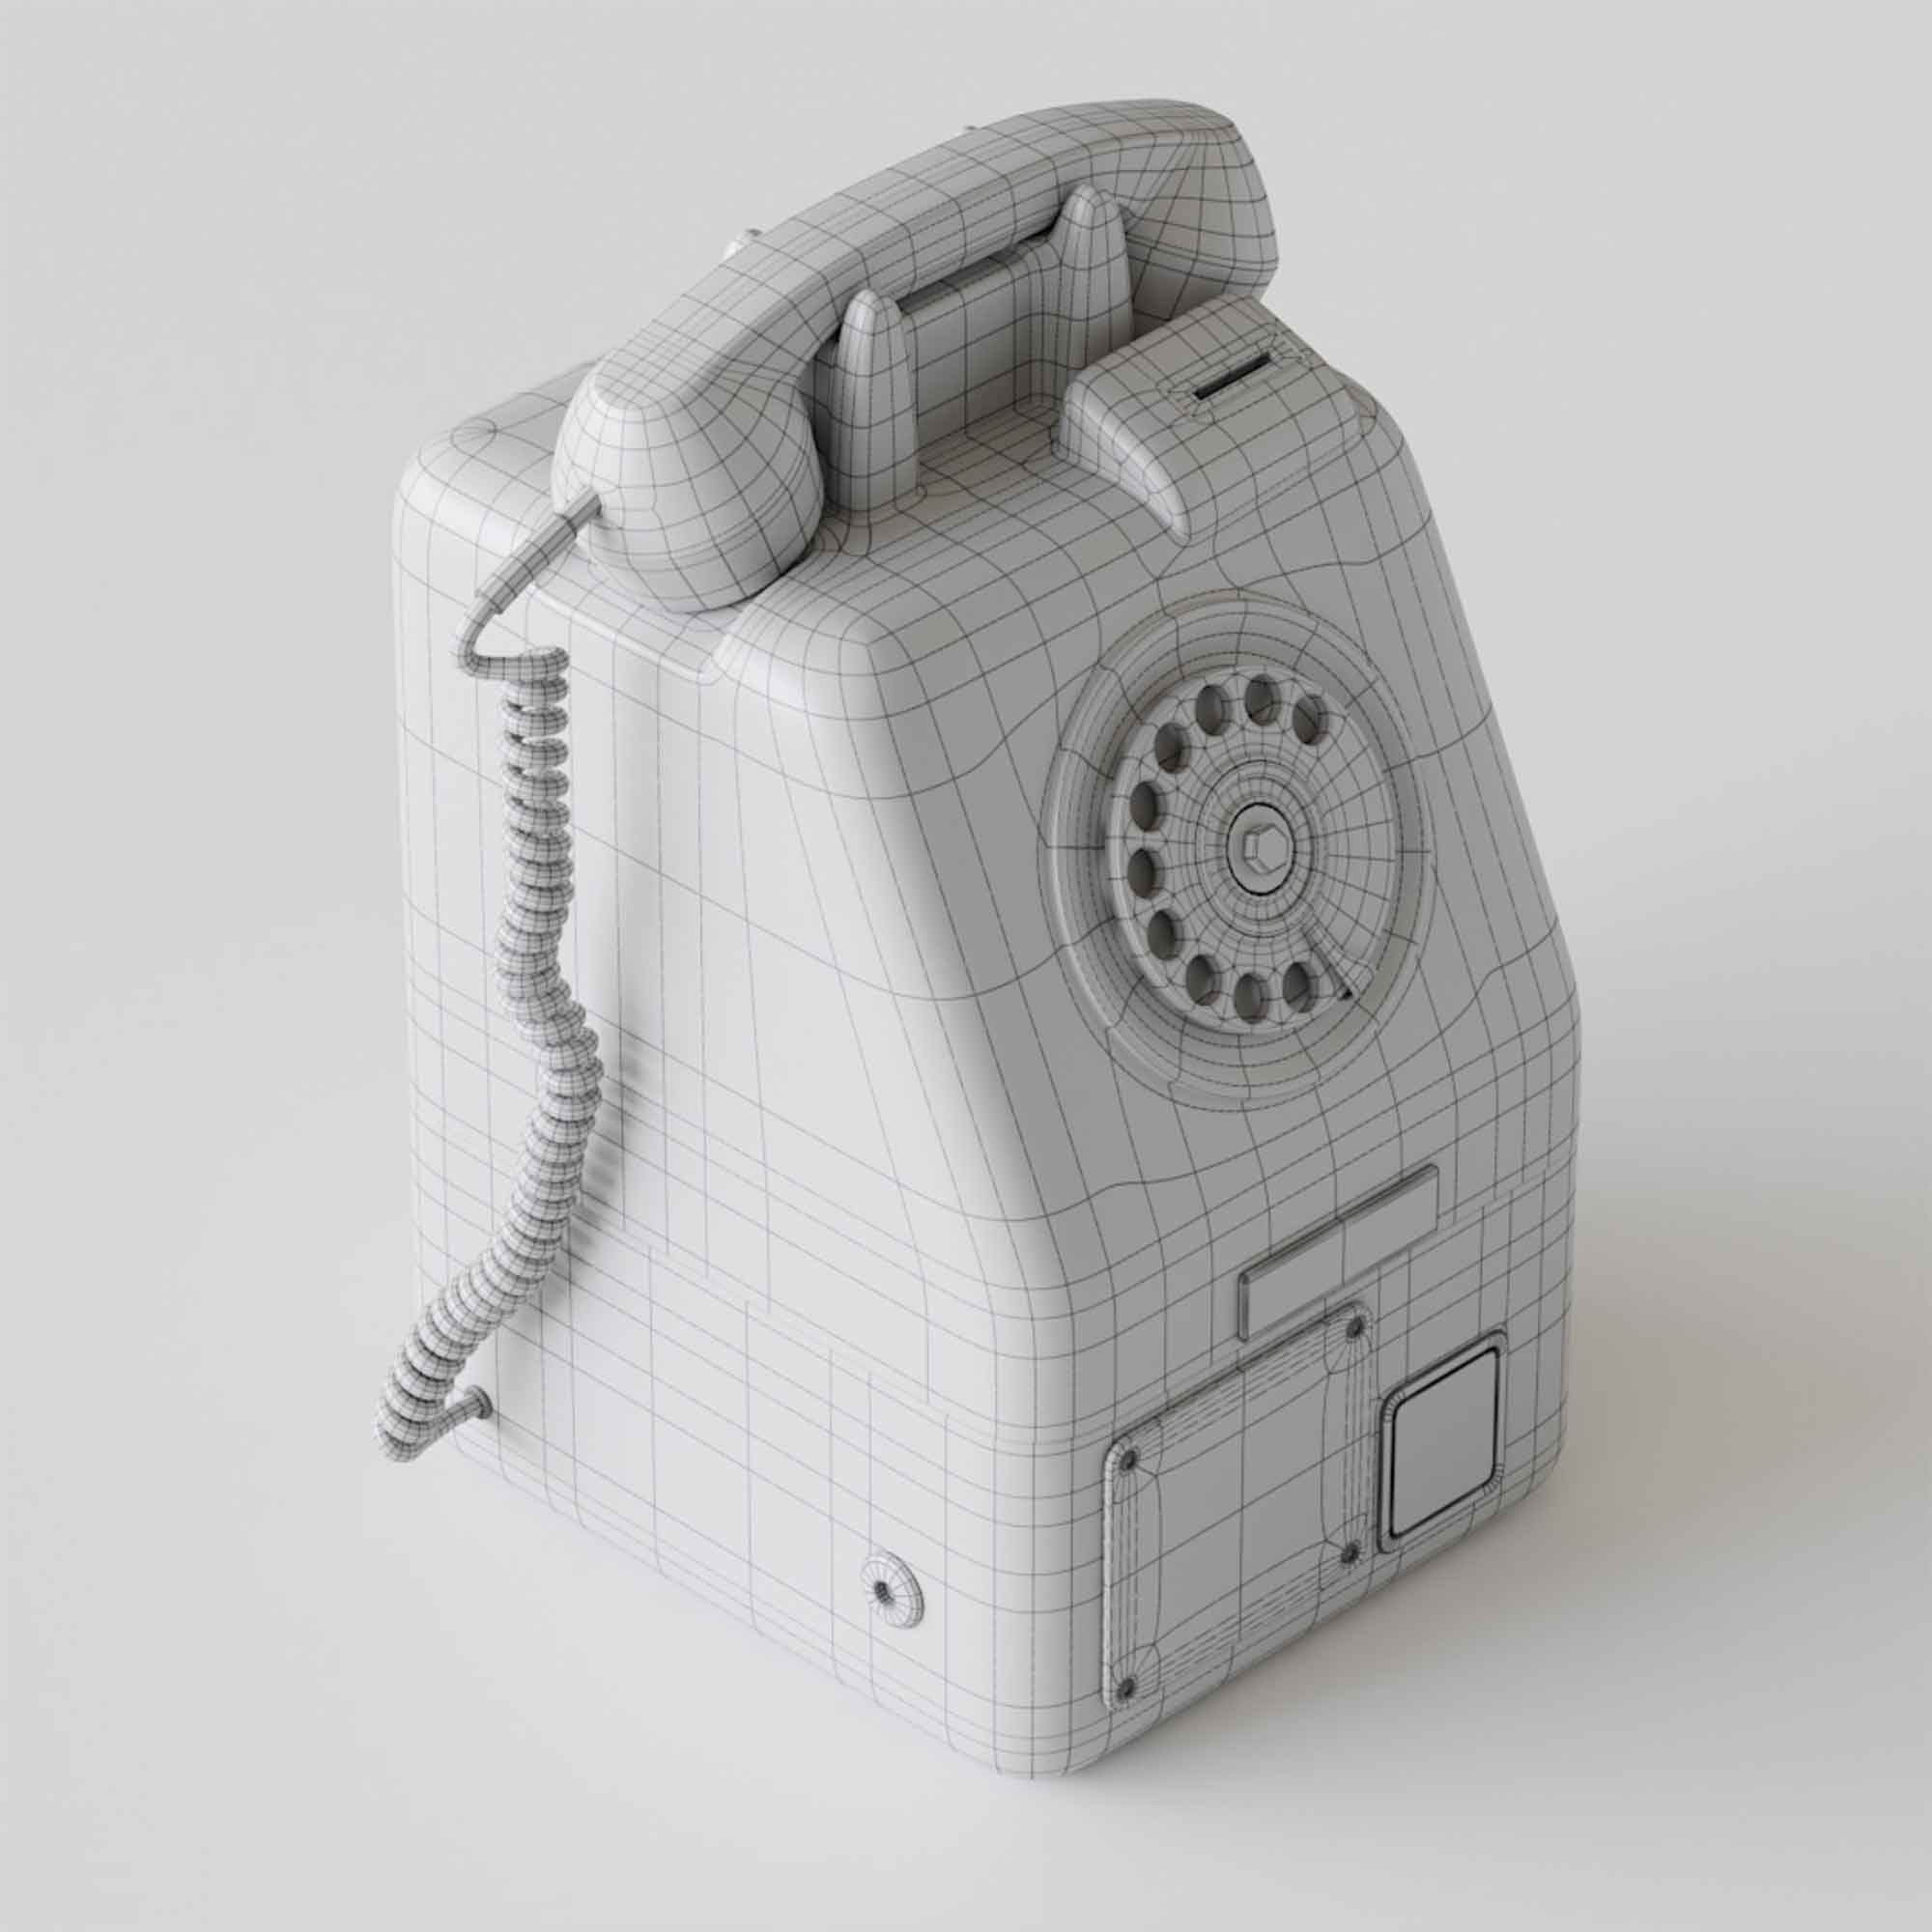 Retro Old Phone 3D Model 3